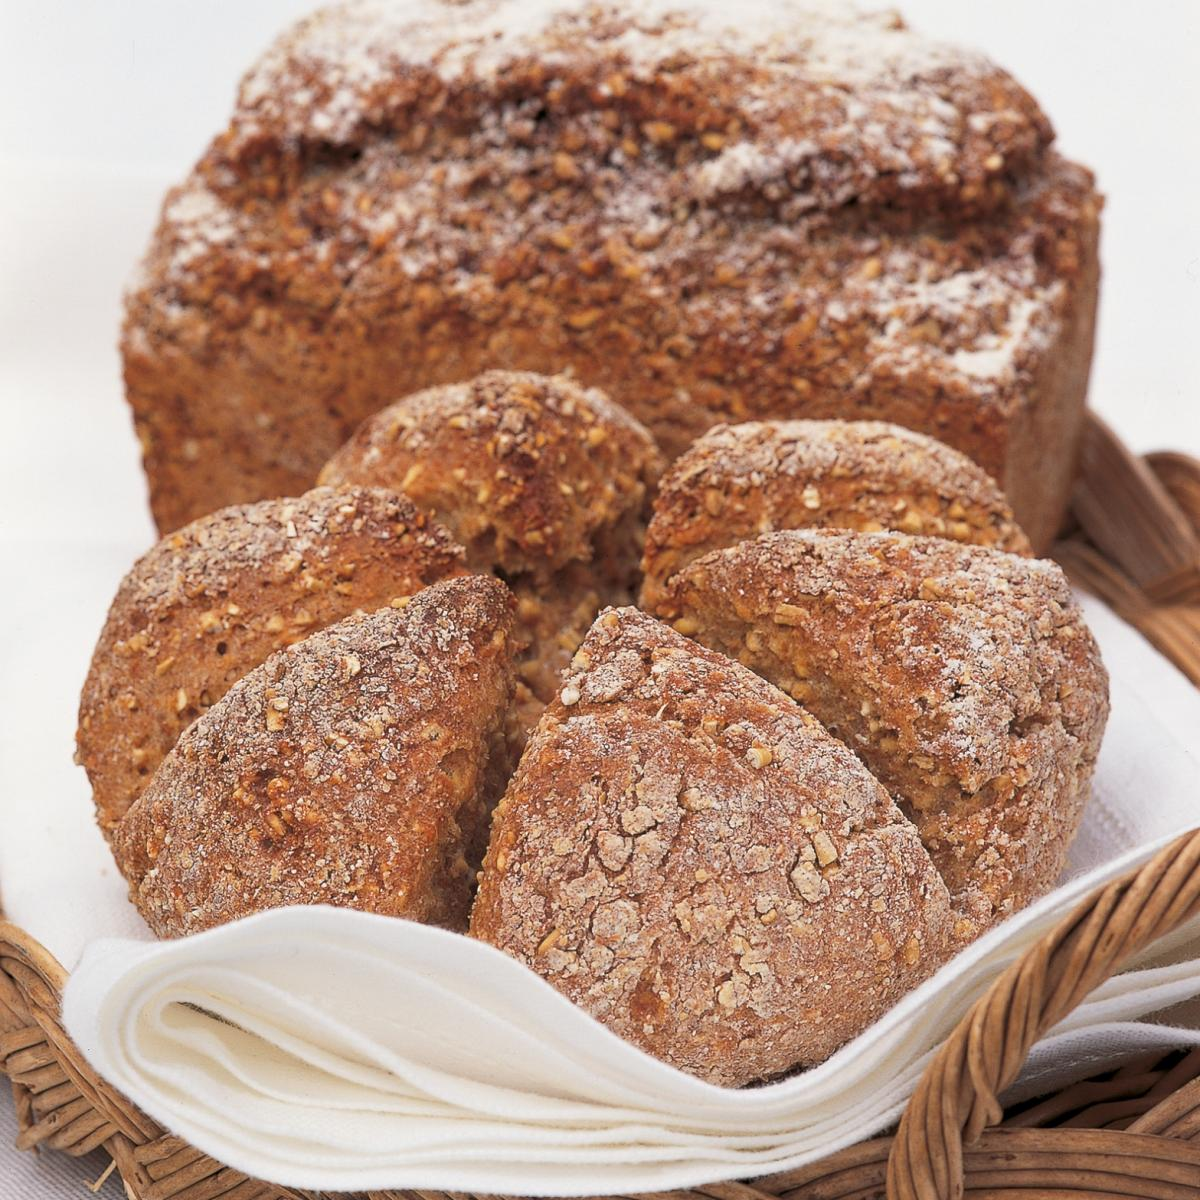 Htc irish oatmeal soda bread